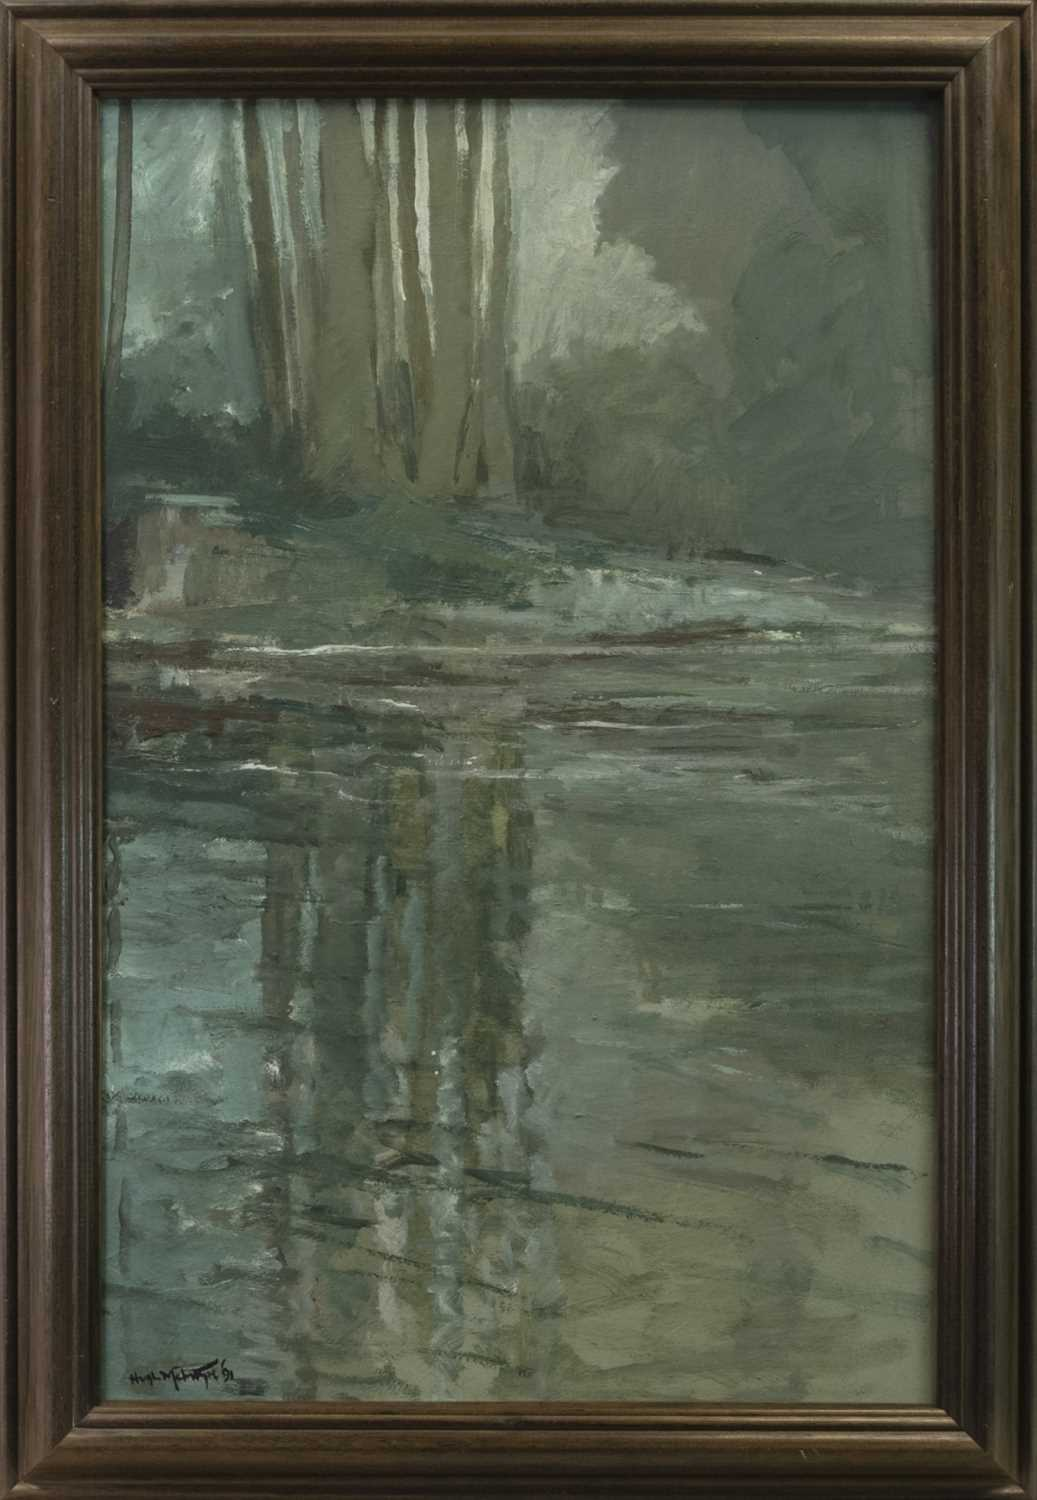 Lot 88 - WOODLAND REFLECTIONS, AN OIL BY HUGH MCINTYRE